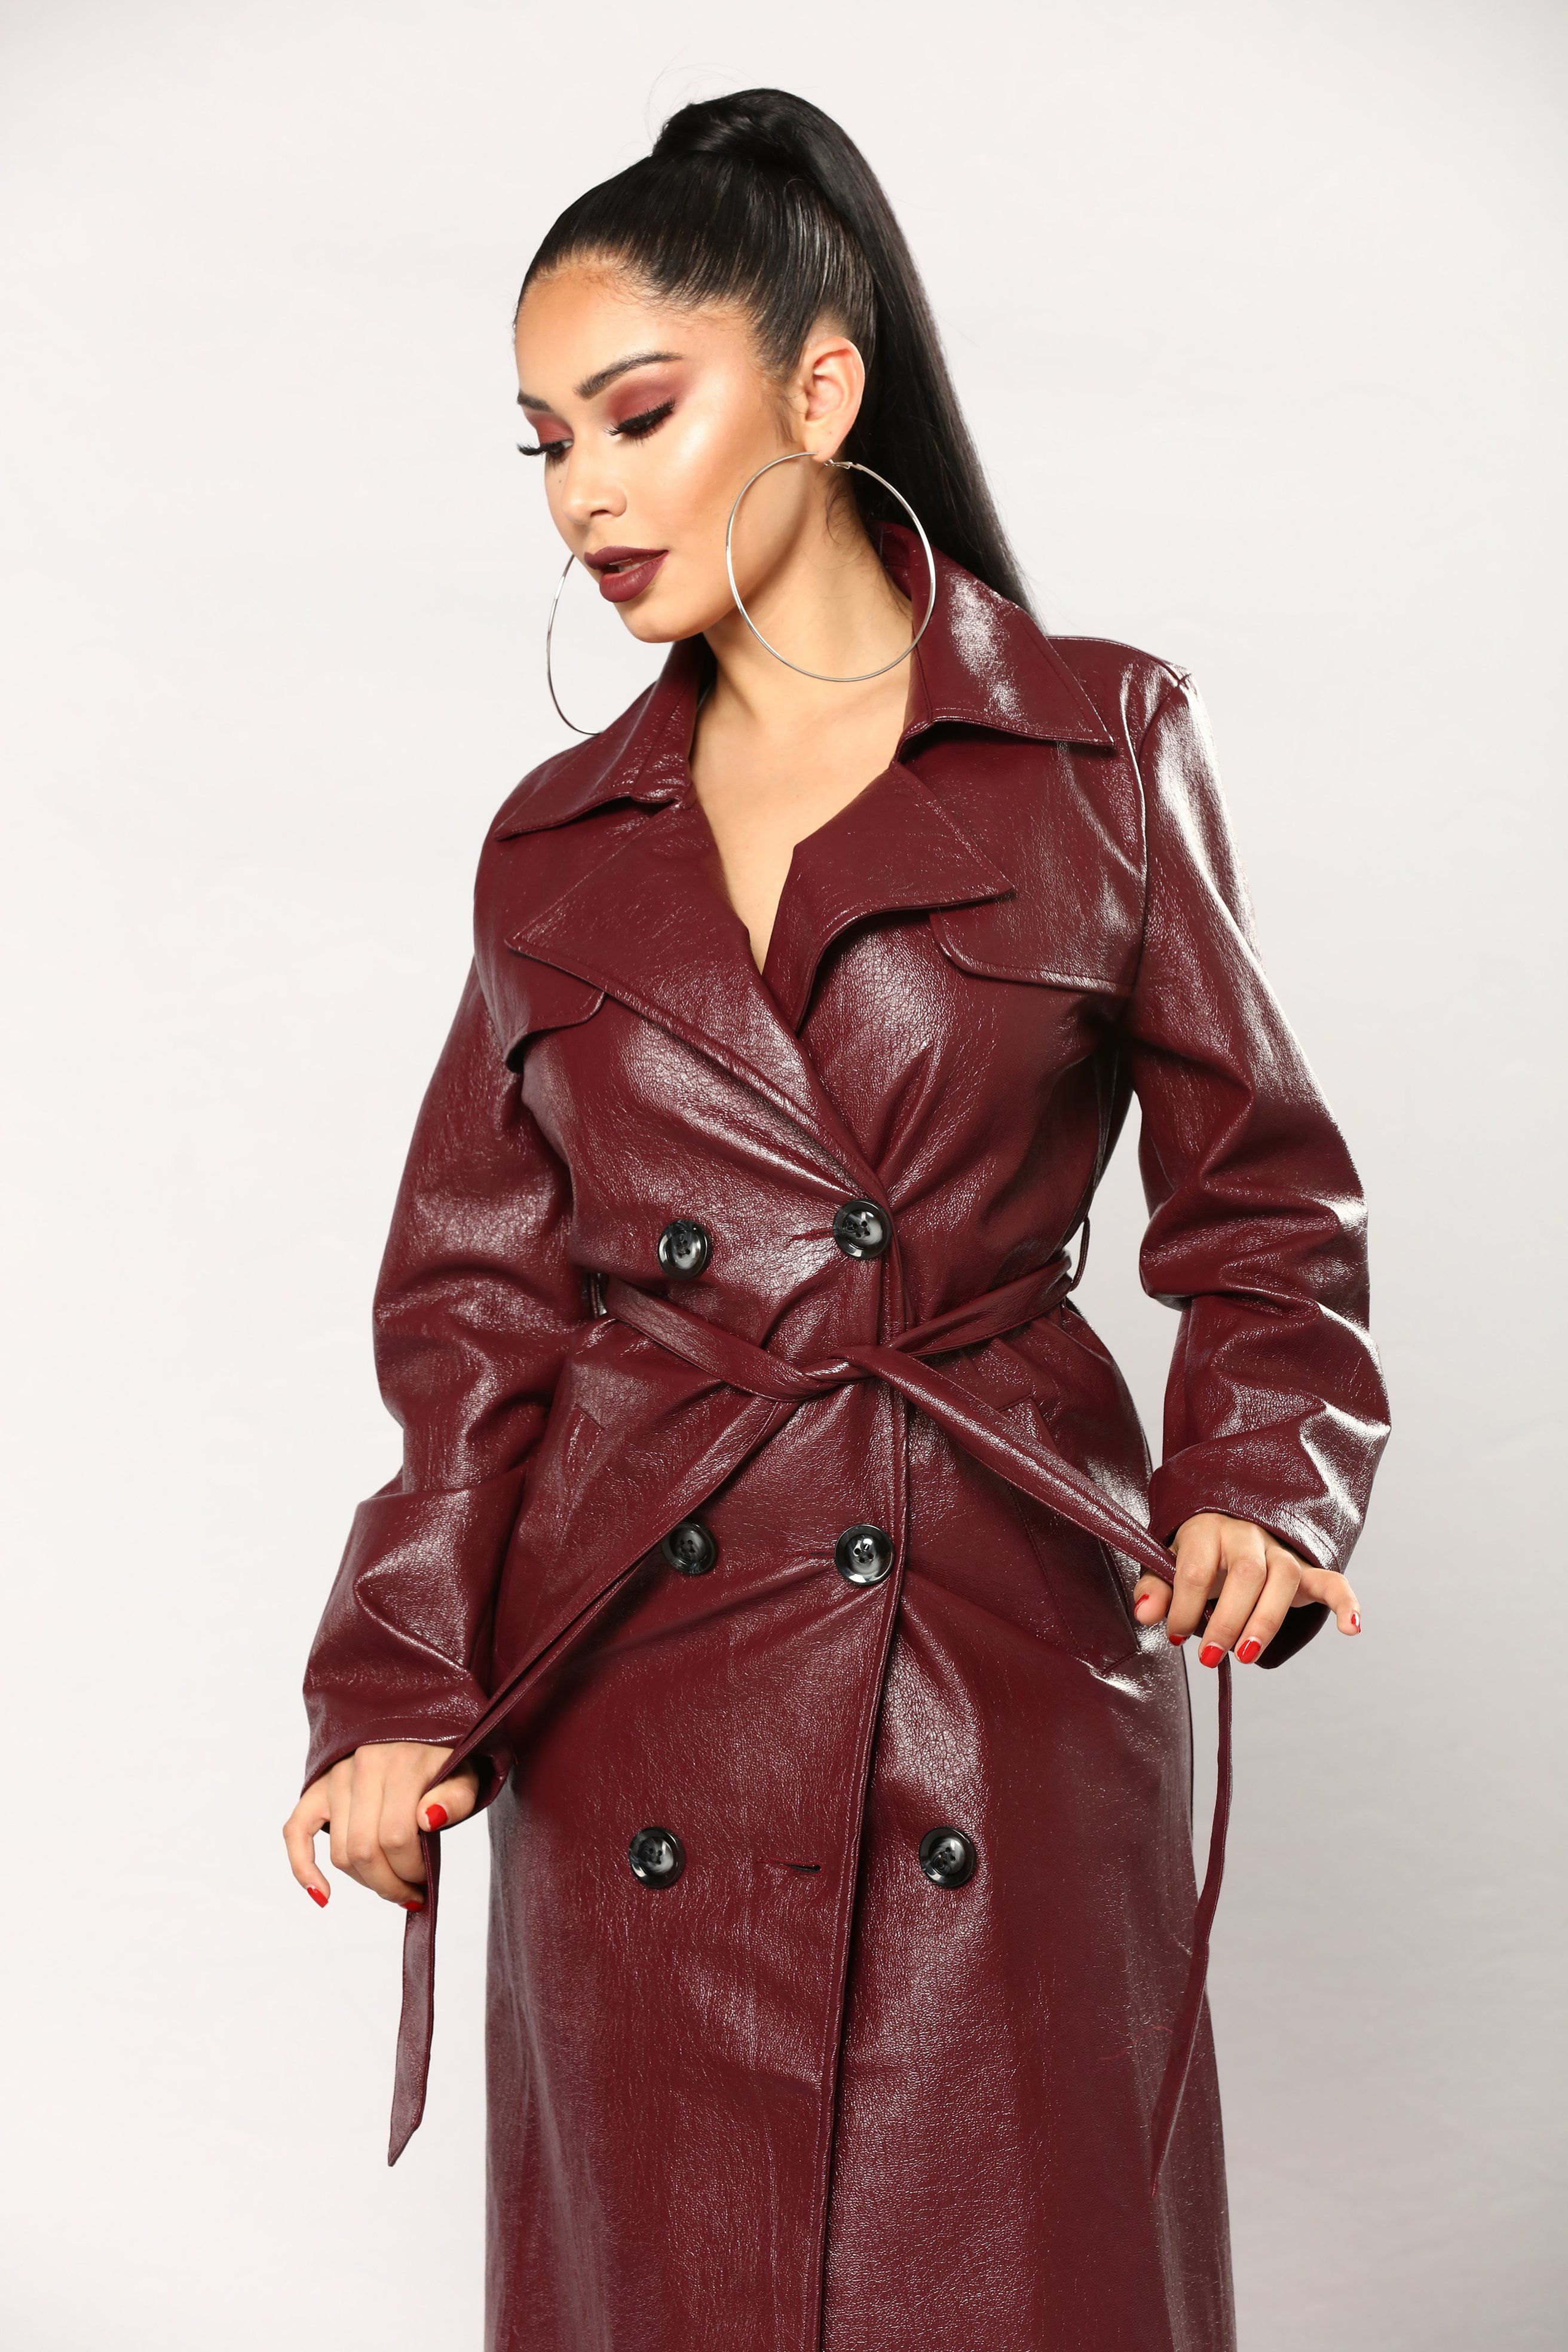 If Looks Could Kill Jacket Burgundy Long leather coat